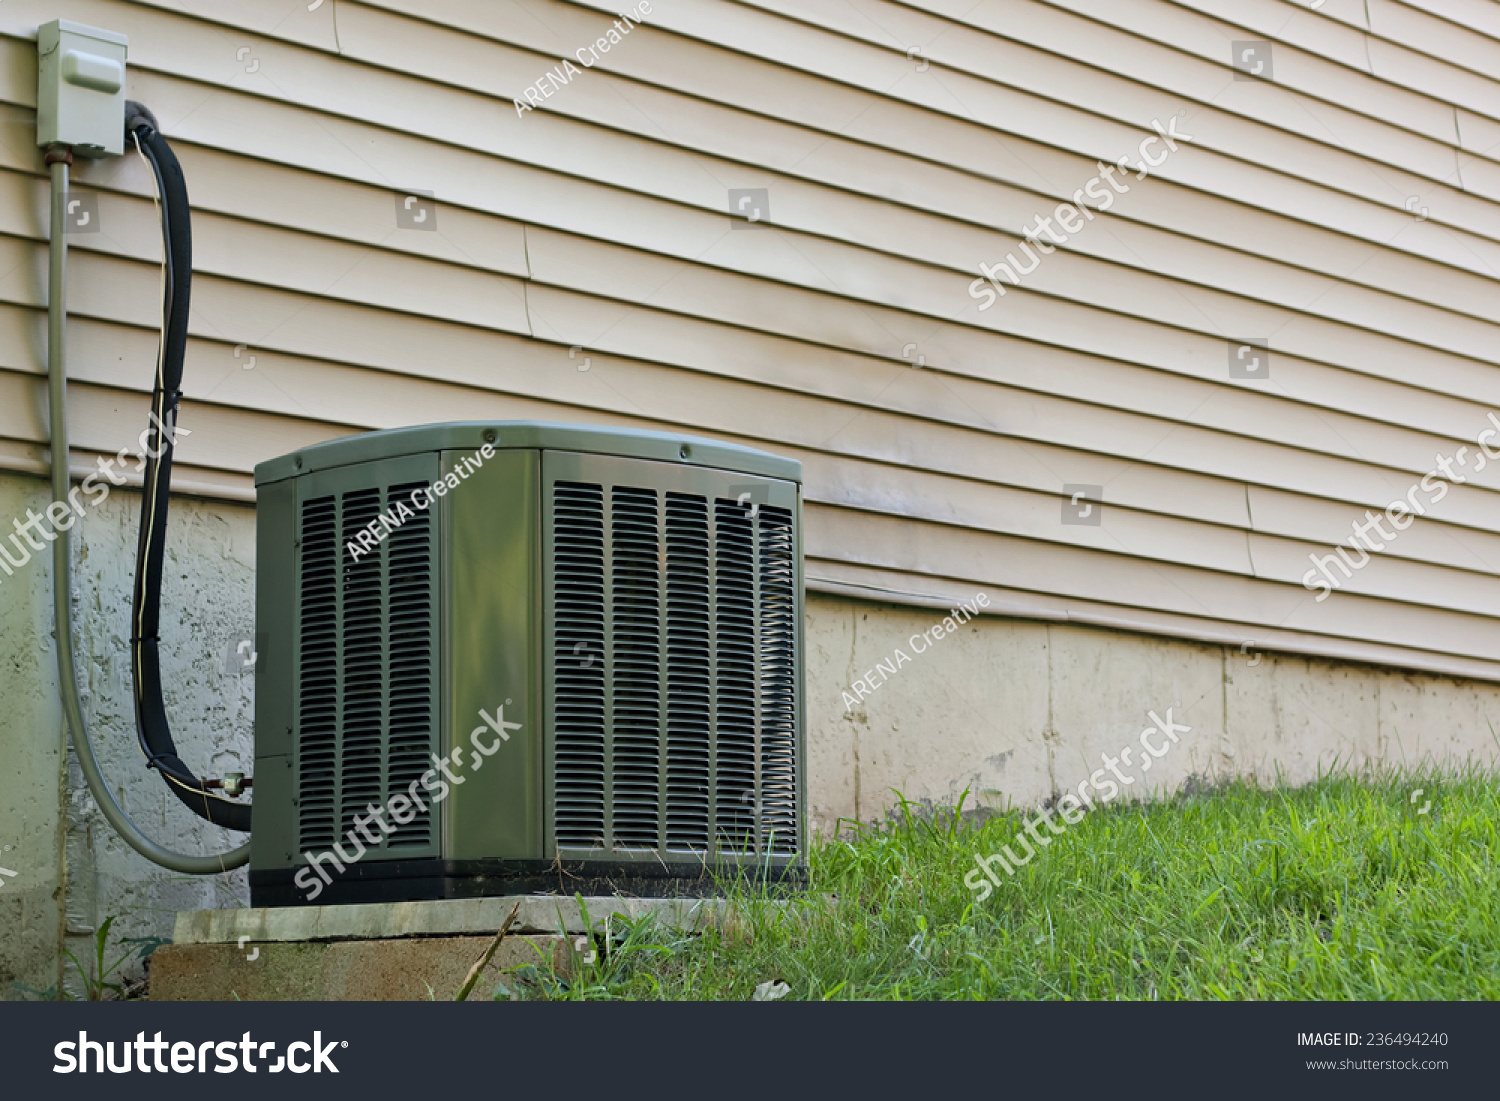 Residential Central Air Conditioning Unit Sitting Stock